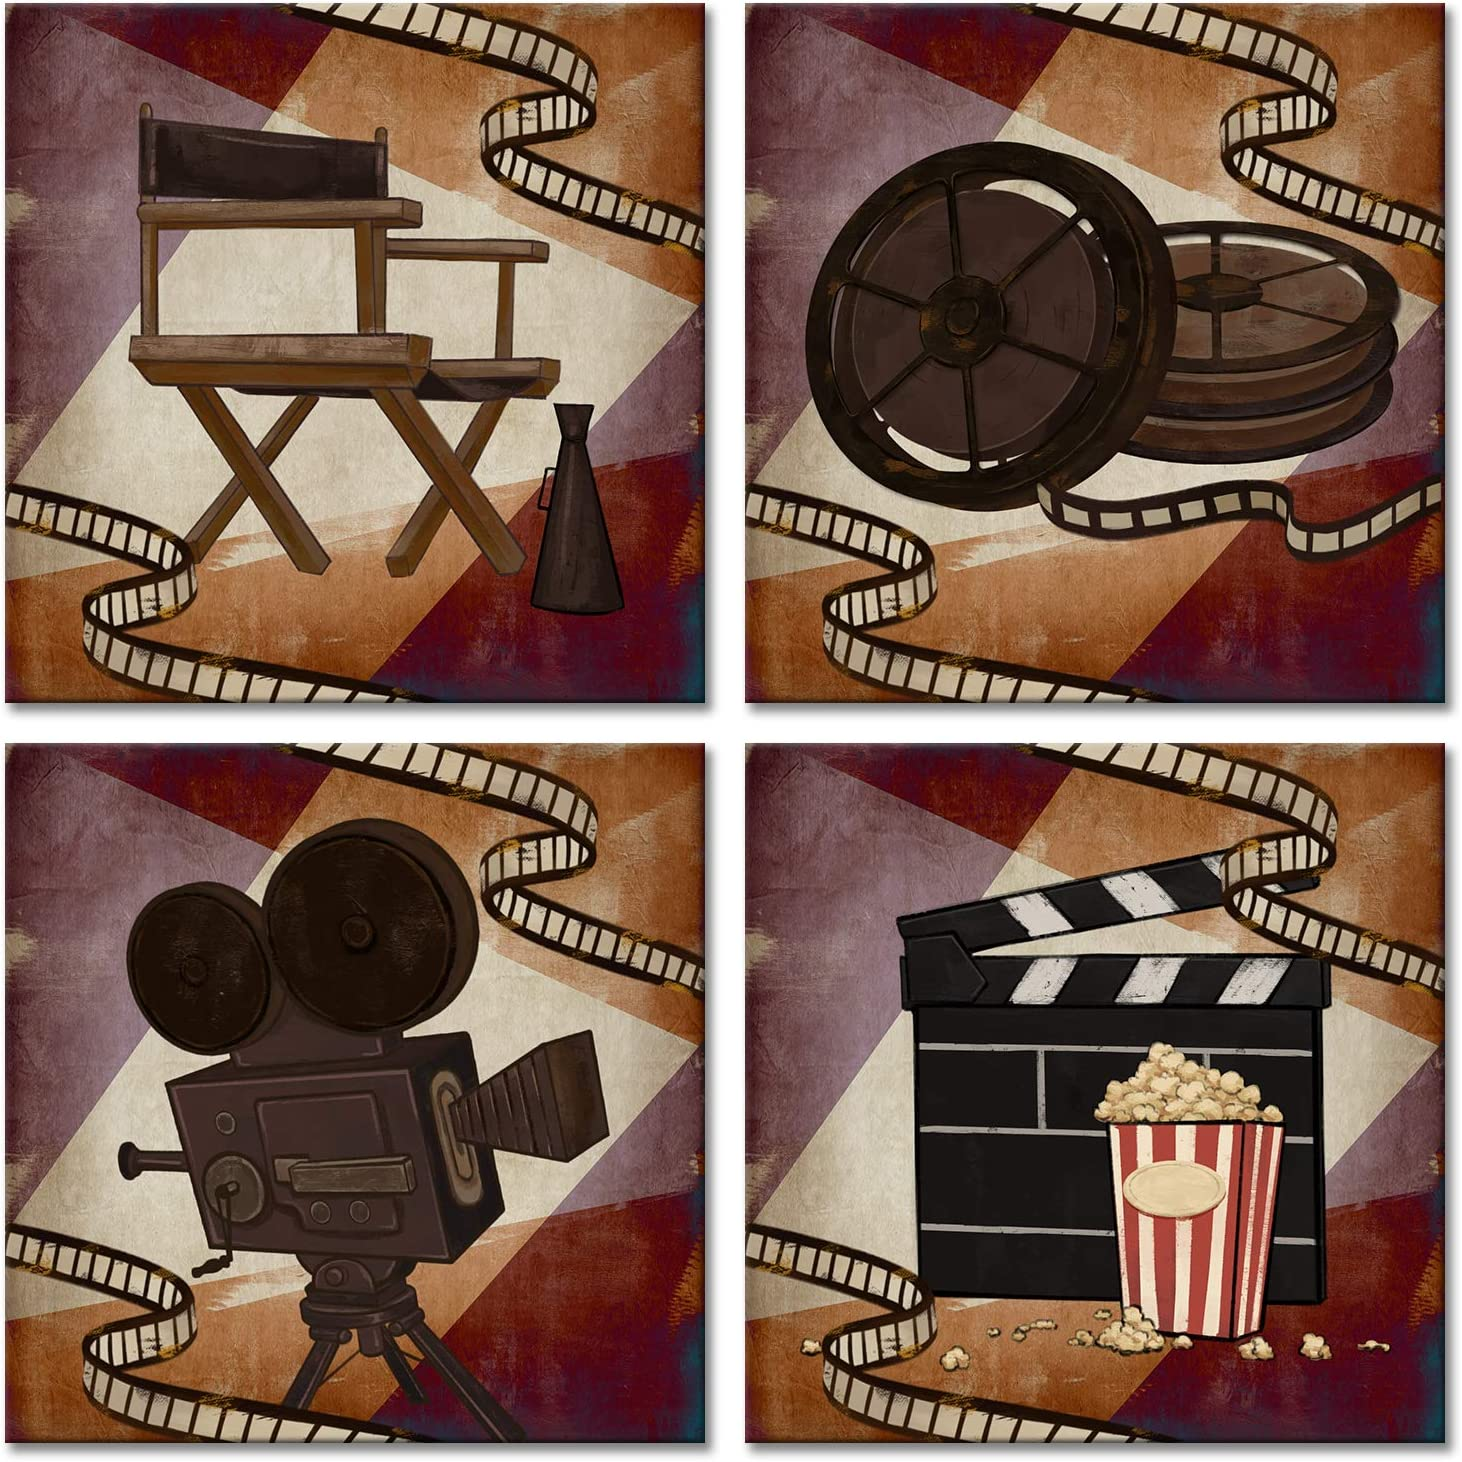 RnnJoile 4 Piece Home Movie Theater Wall Art Vintage Classic Film Reel Cinema Painting Poster Print Retro Old Fashion Artwork for Media Room Bar Pub Decoration Framed Ready to Hang 12x12 Inch